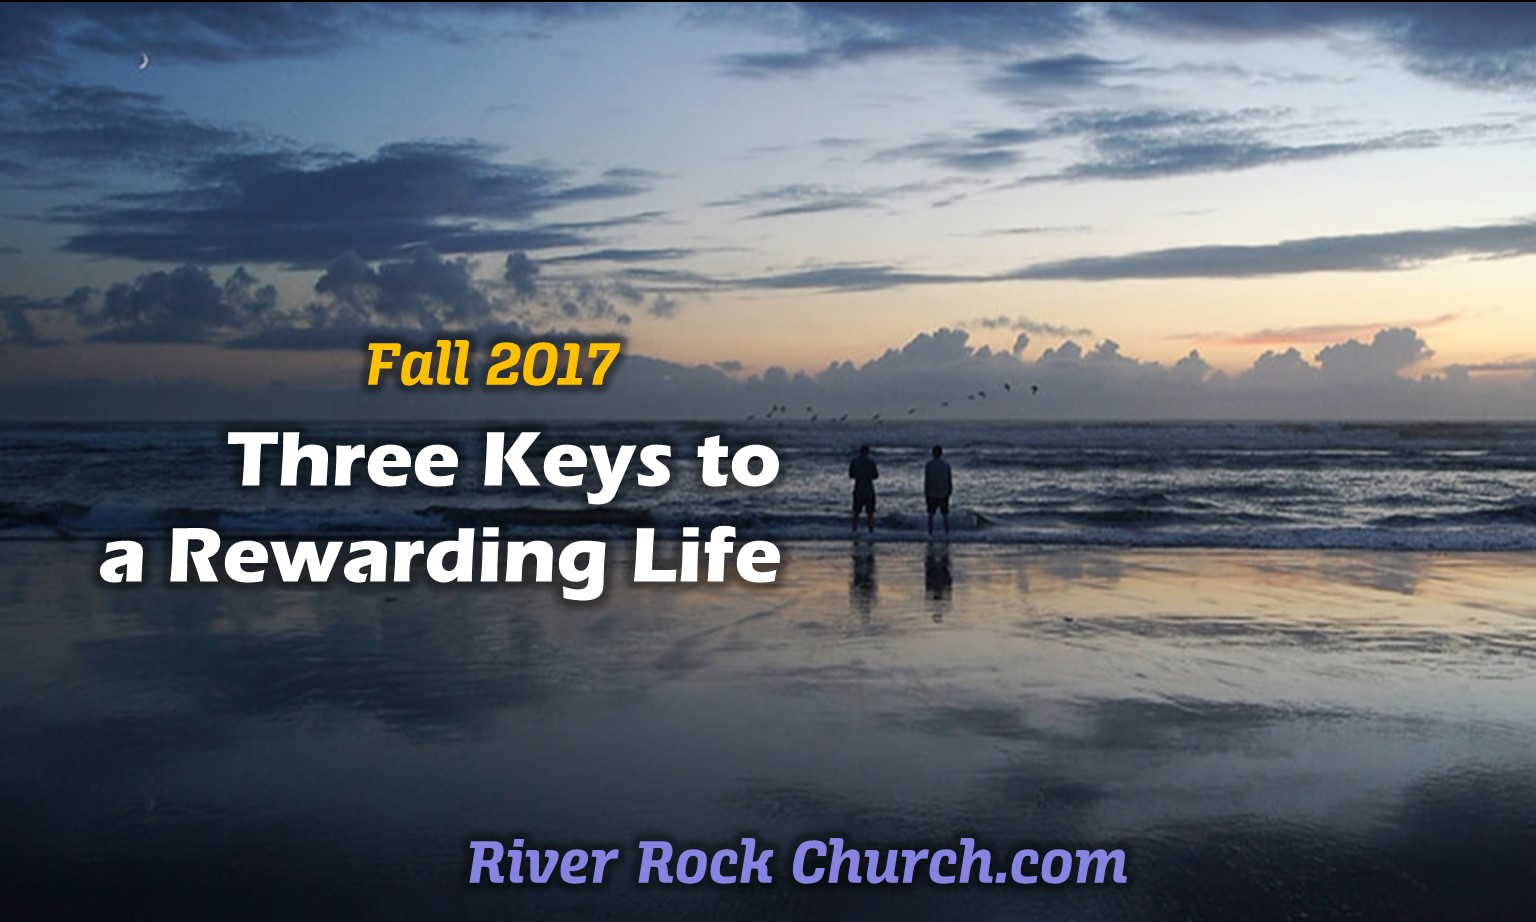 Listen to Three Keys to a Rewarding Life